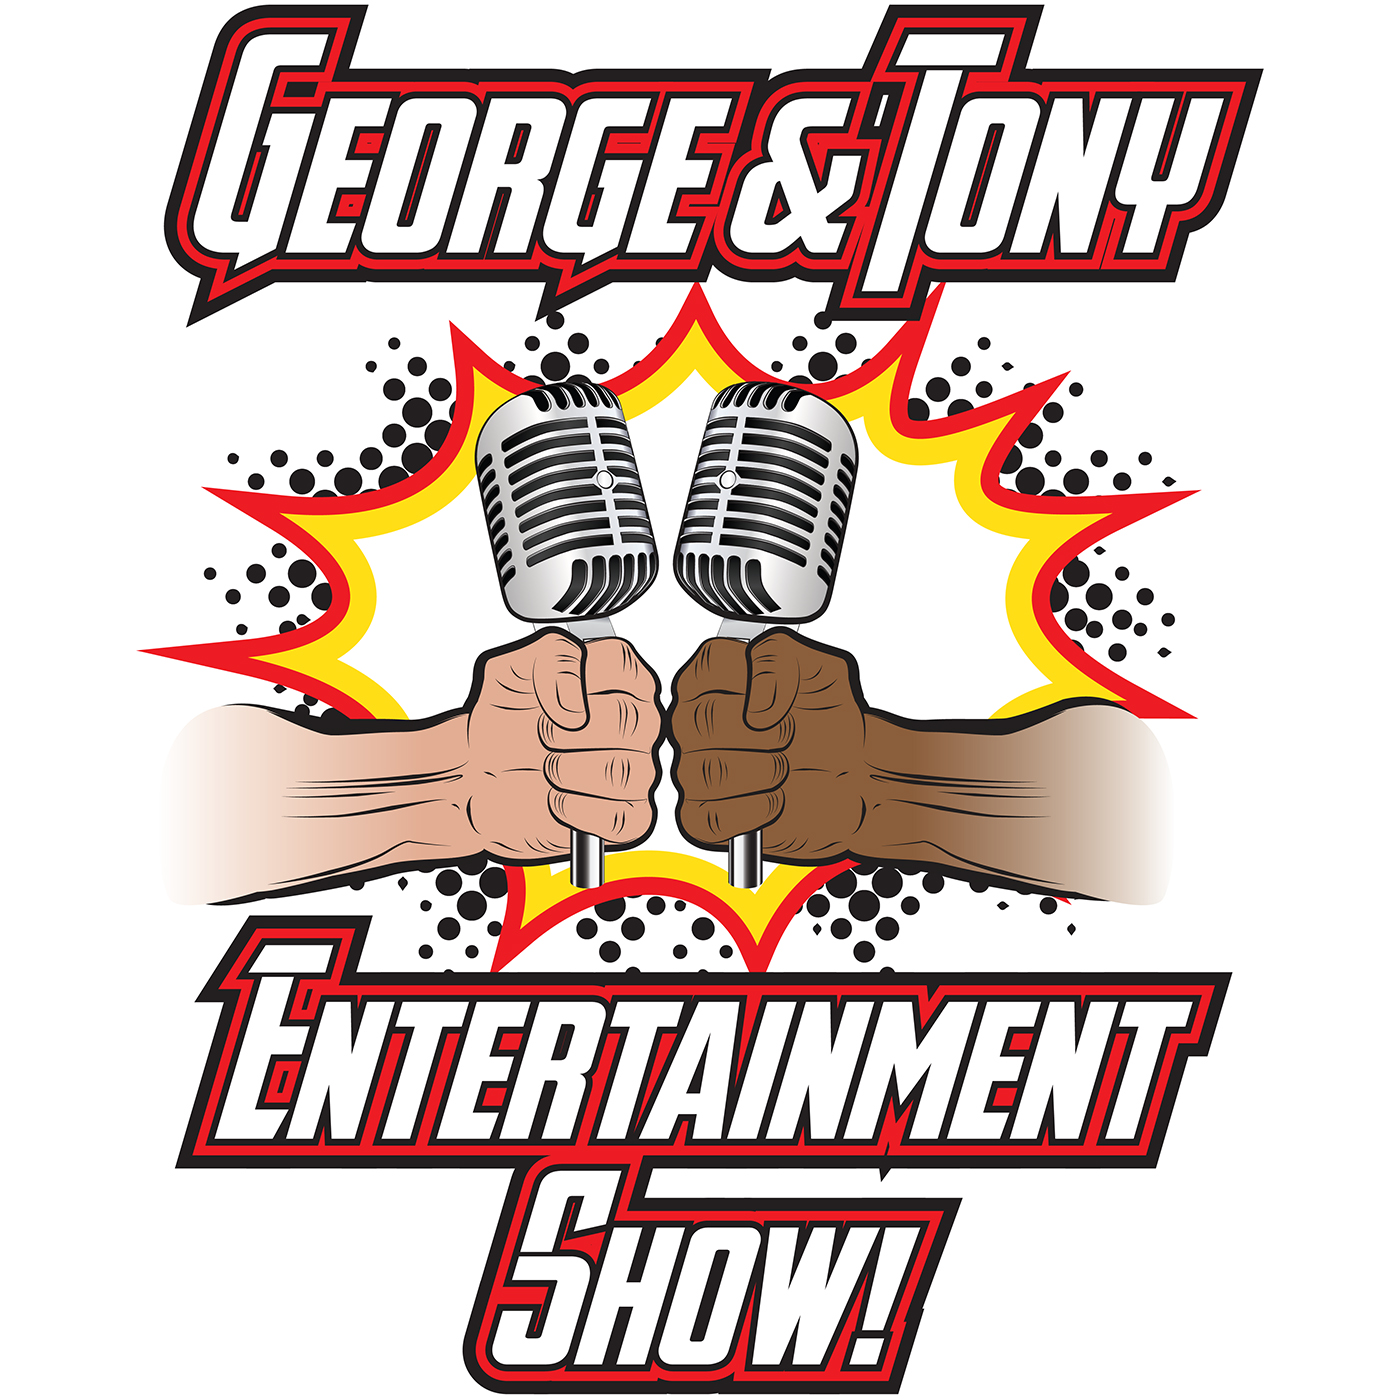 George and Tony Entertainment Show #69